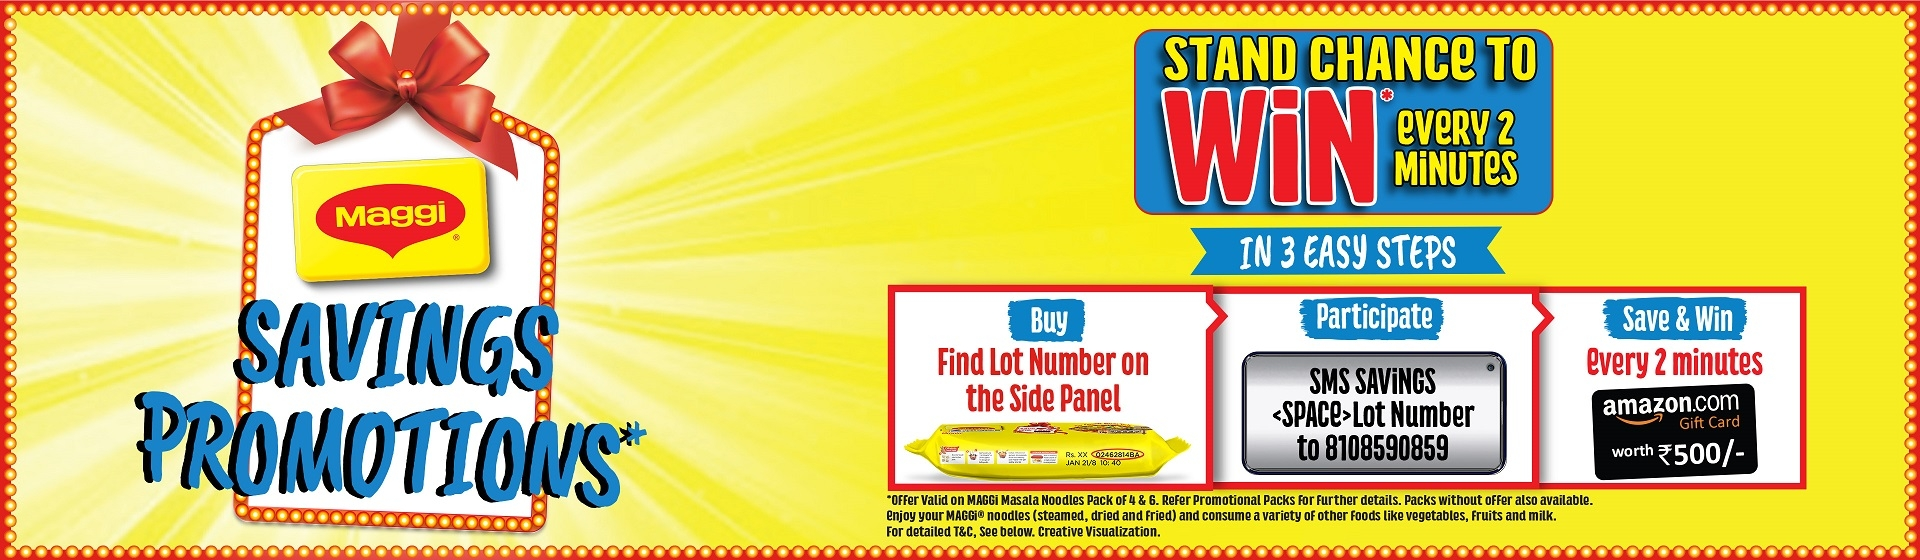 Maggi Woohoo Offer ; Win Rs. 500 Amazon Gift Voucher in Every 2 Minutes